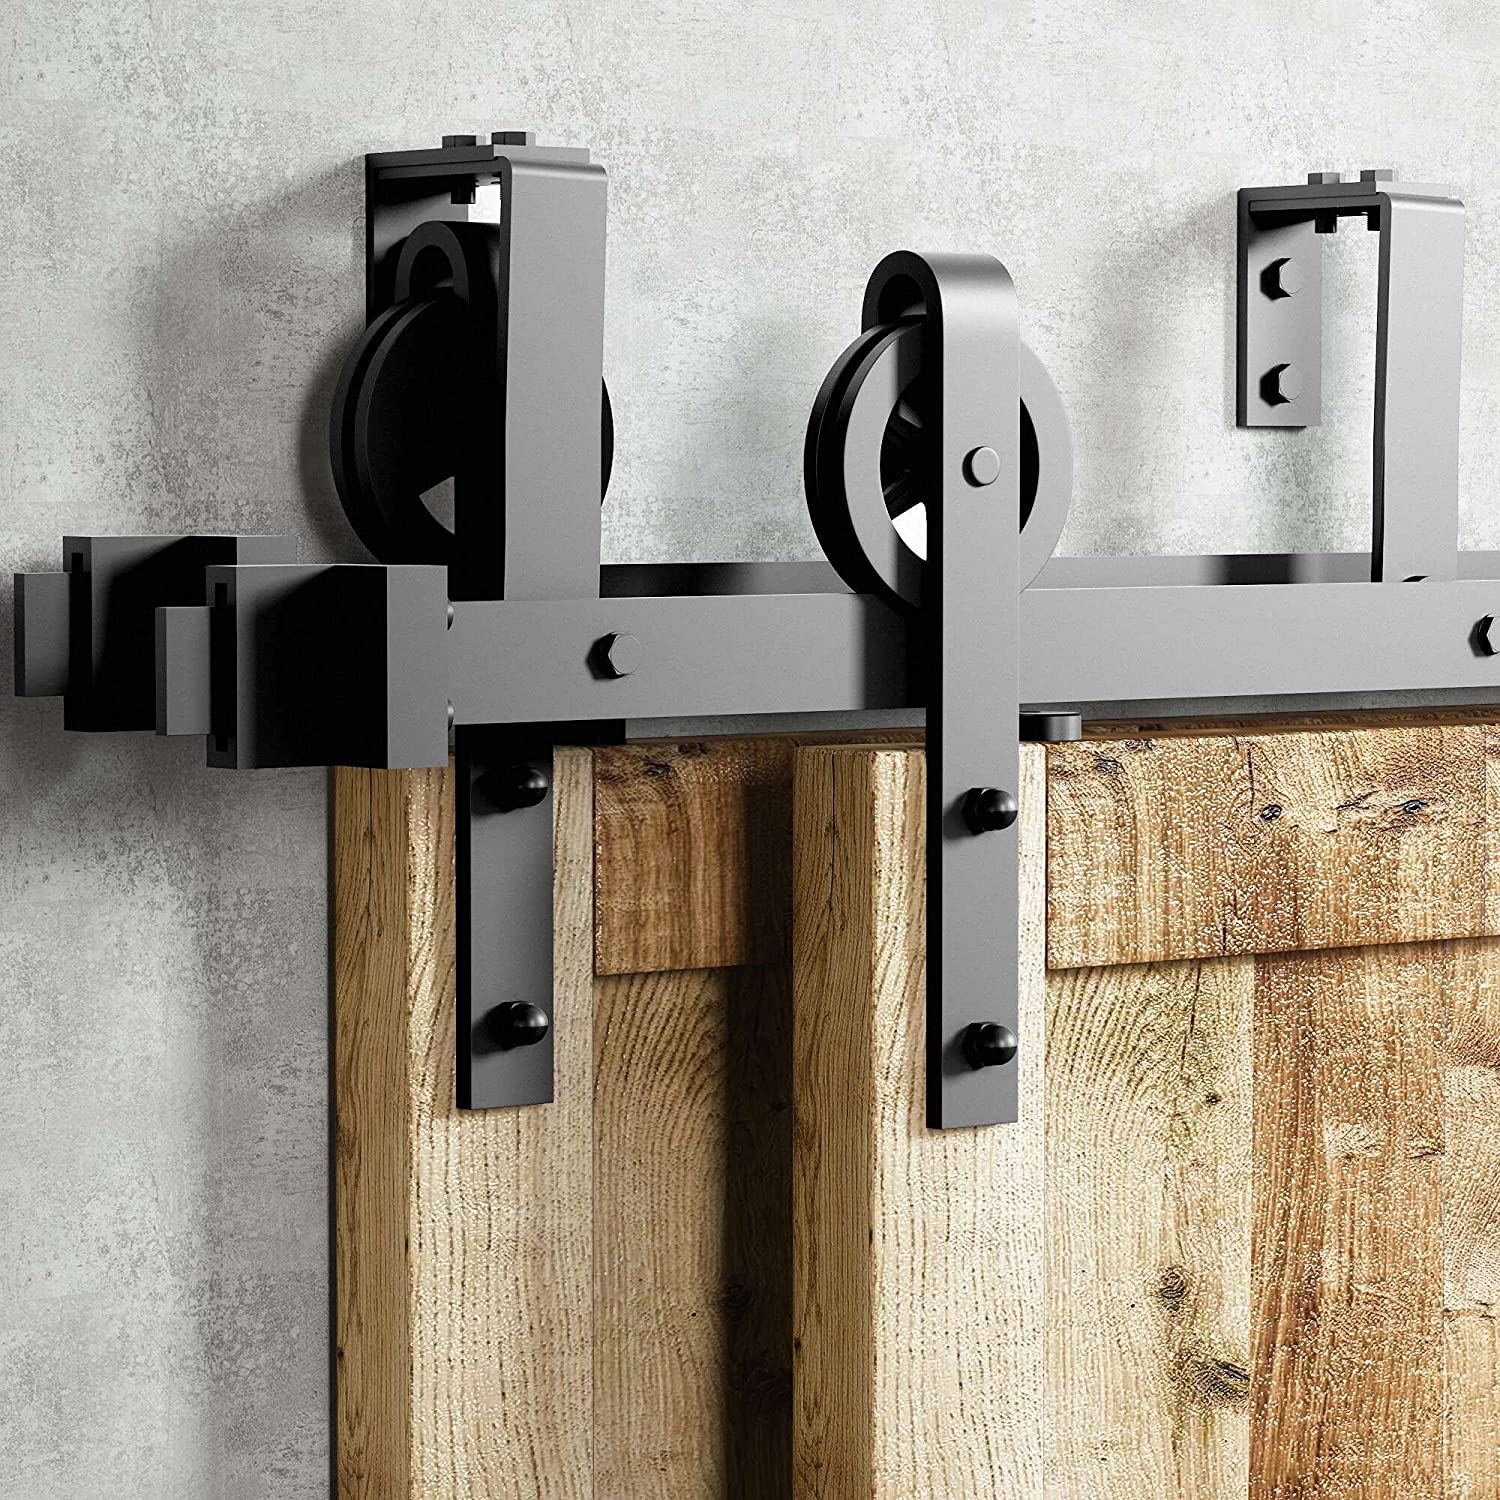 Homacer Black Recommendation Rustic Ranking TOP16 Double Track Barn Bypass Do U-Shape Sliding